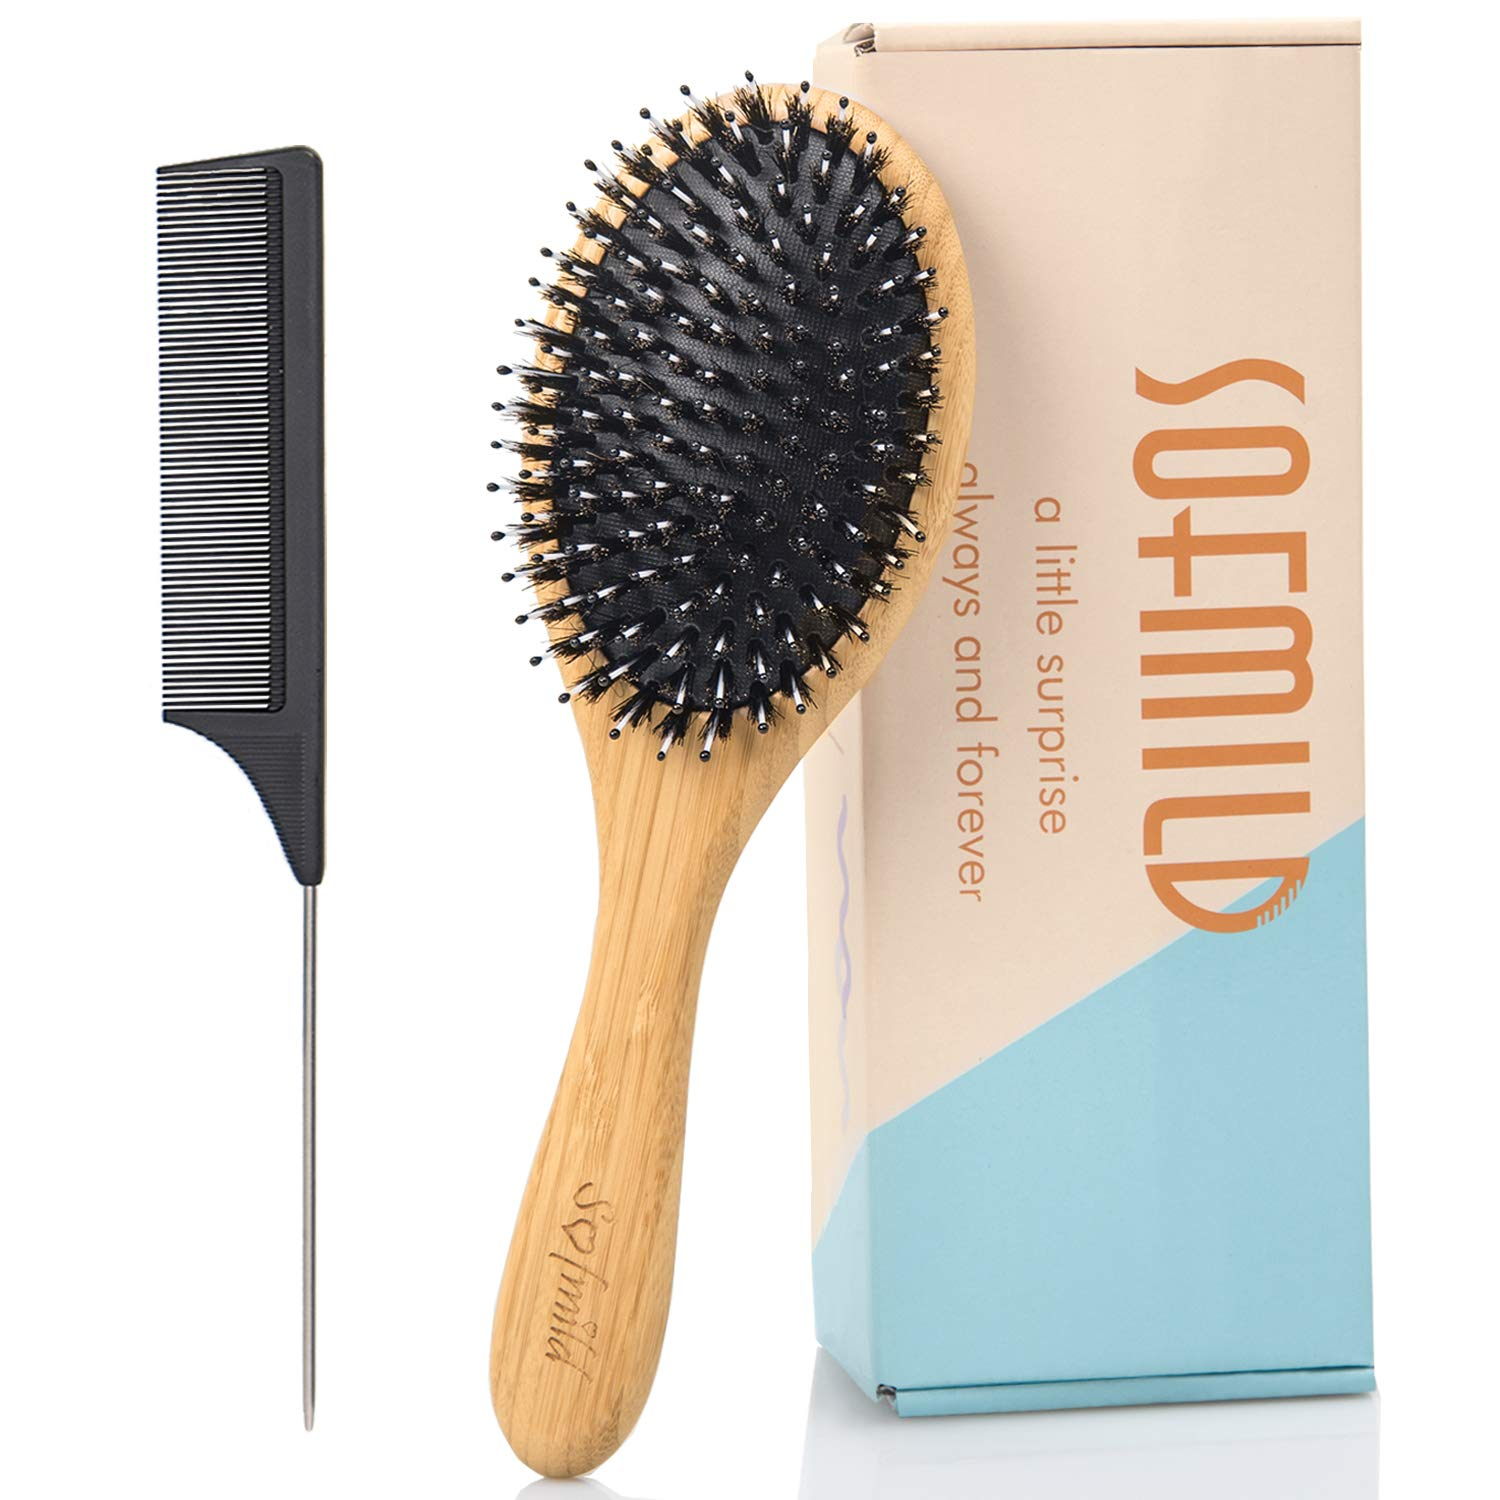 Hair Brush, Boar Bristle HairBrush Set for Thick Fine Curly Thin Hair, Oval Bamboo Paddle Nylon&Boar Bristle Brush for Women, Men, Kids. Reduce Frizz Make your Hair Smooth, Bouncy, and Shiny.